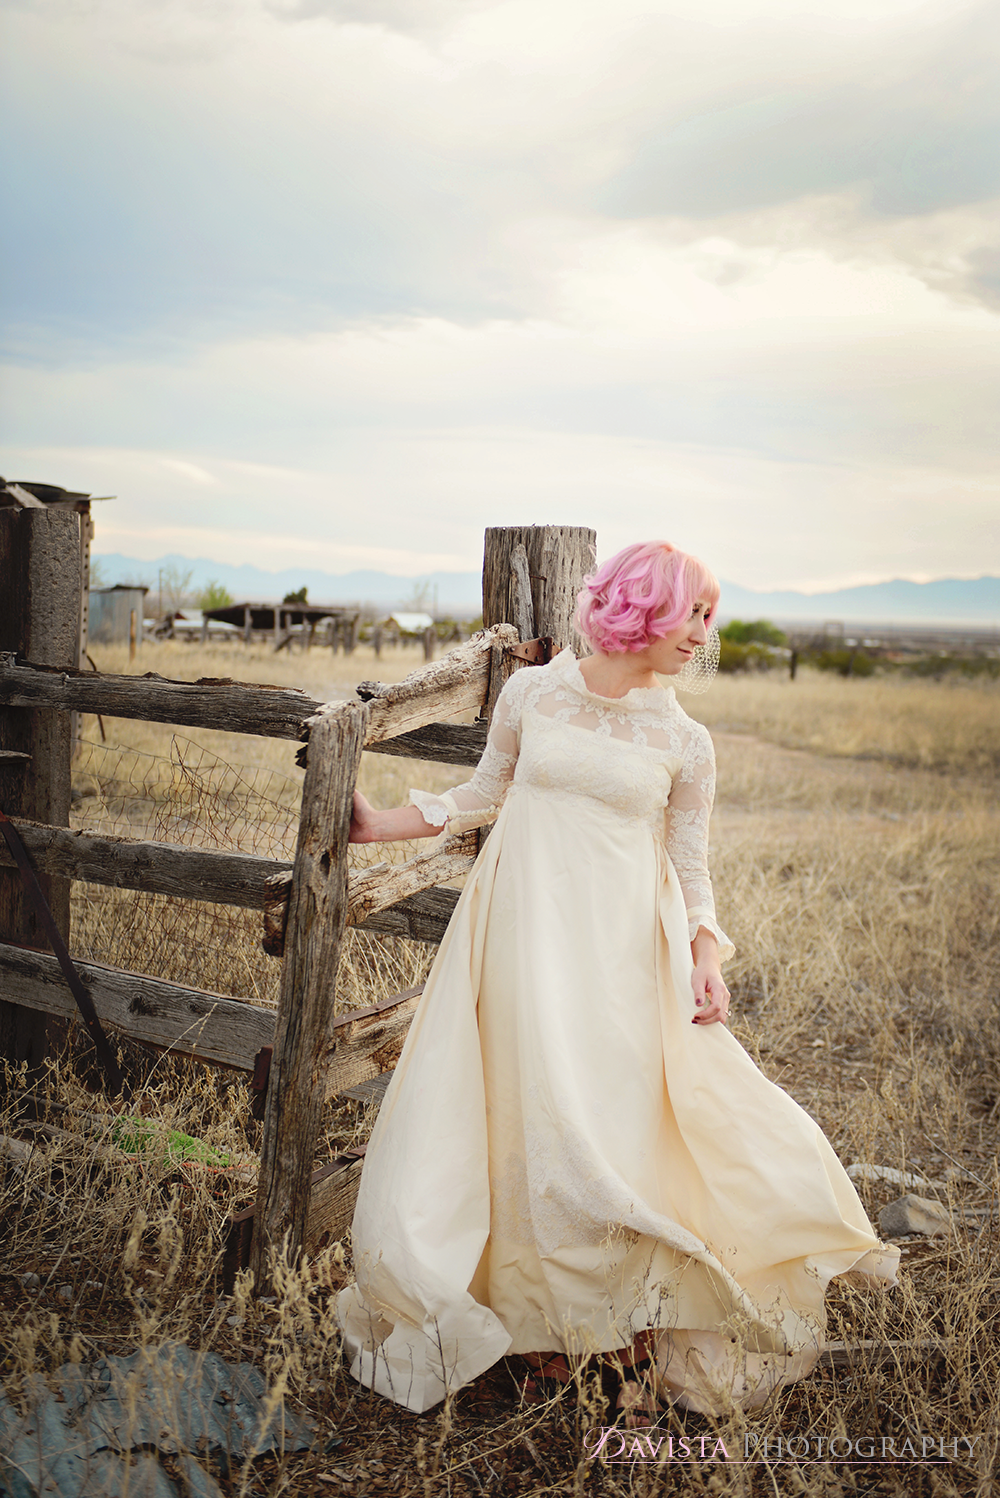 1960s-wedding-dress-fashion-shoot-alamogordo-new-mexico